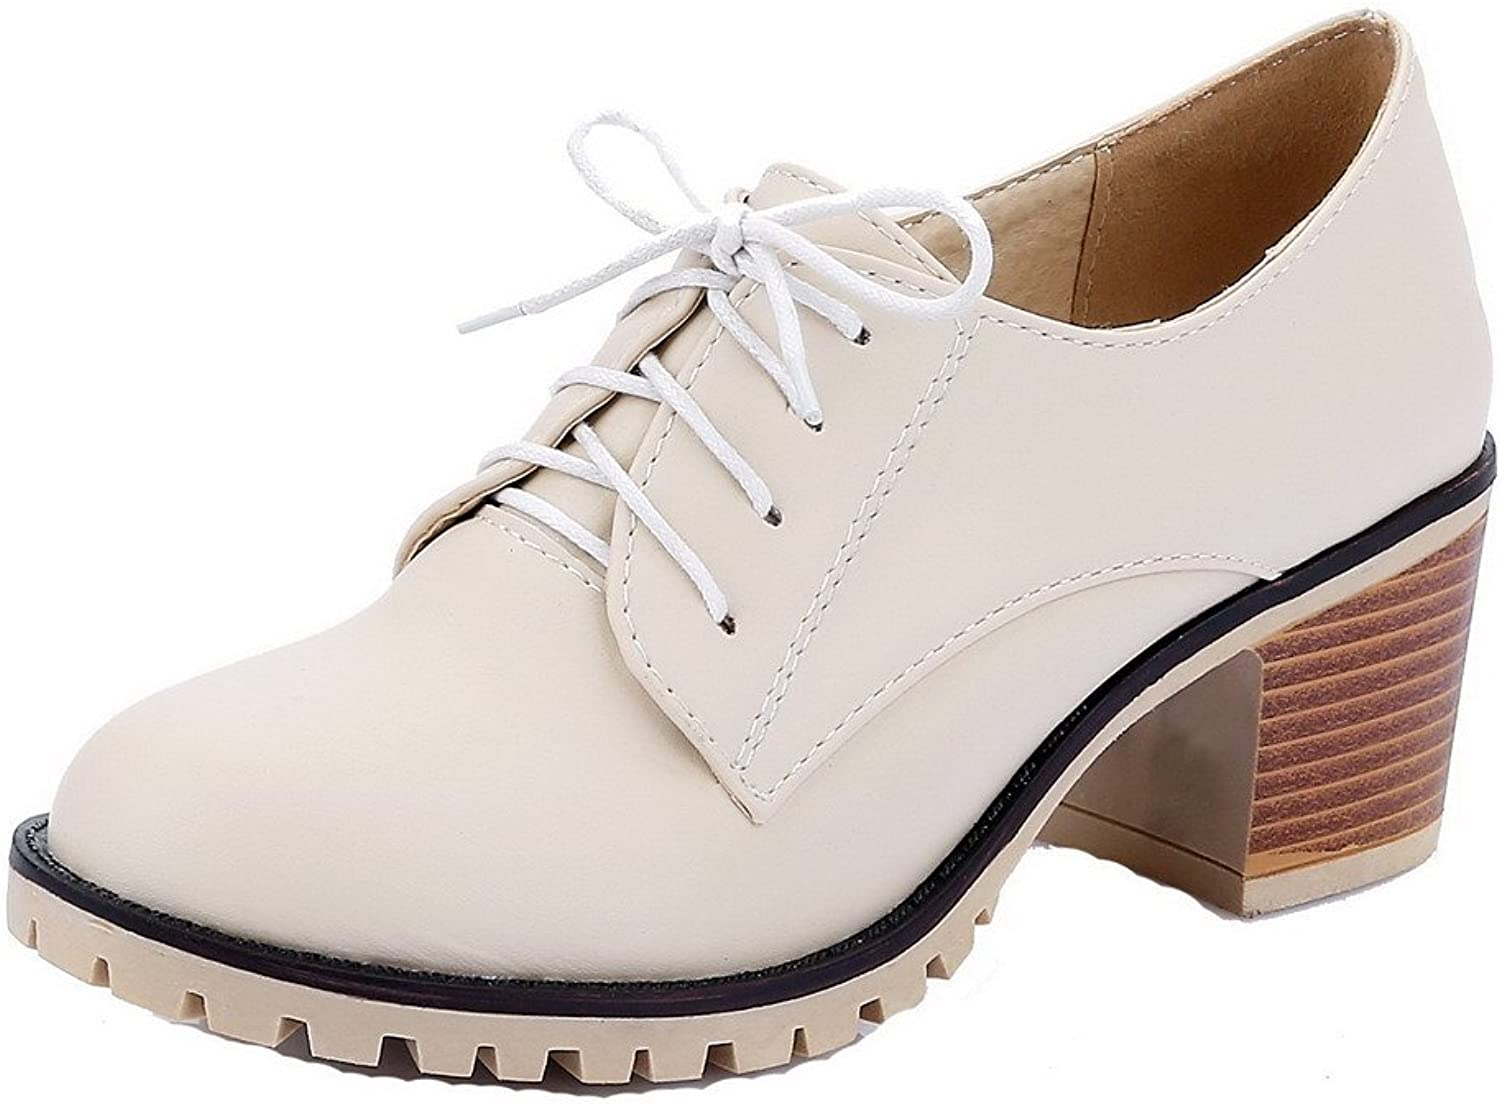 AmoonyFashion Women's Round-Toe Kitten-Heels PU Solid Lace-up Pumps-shoes